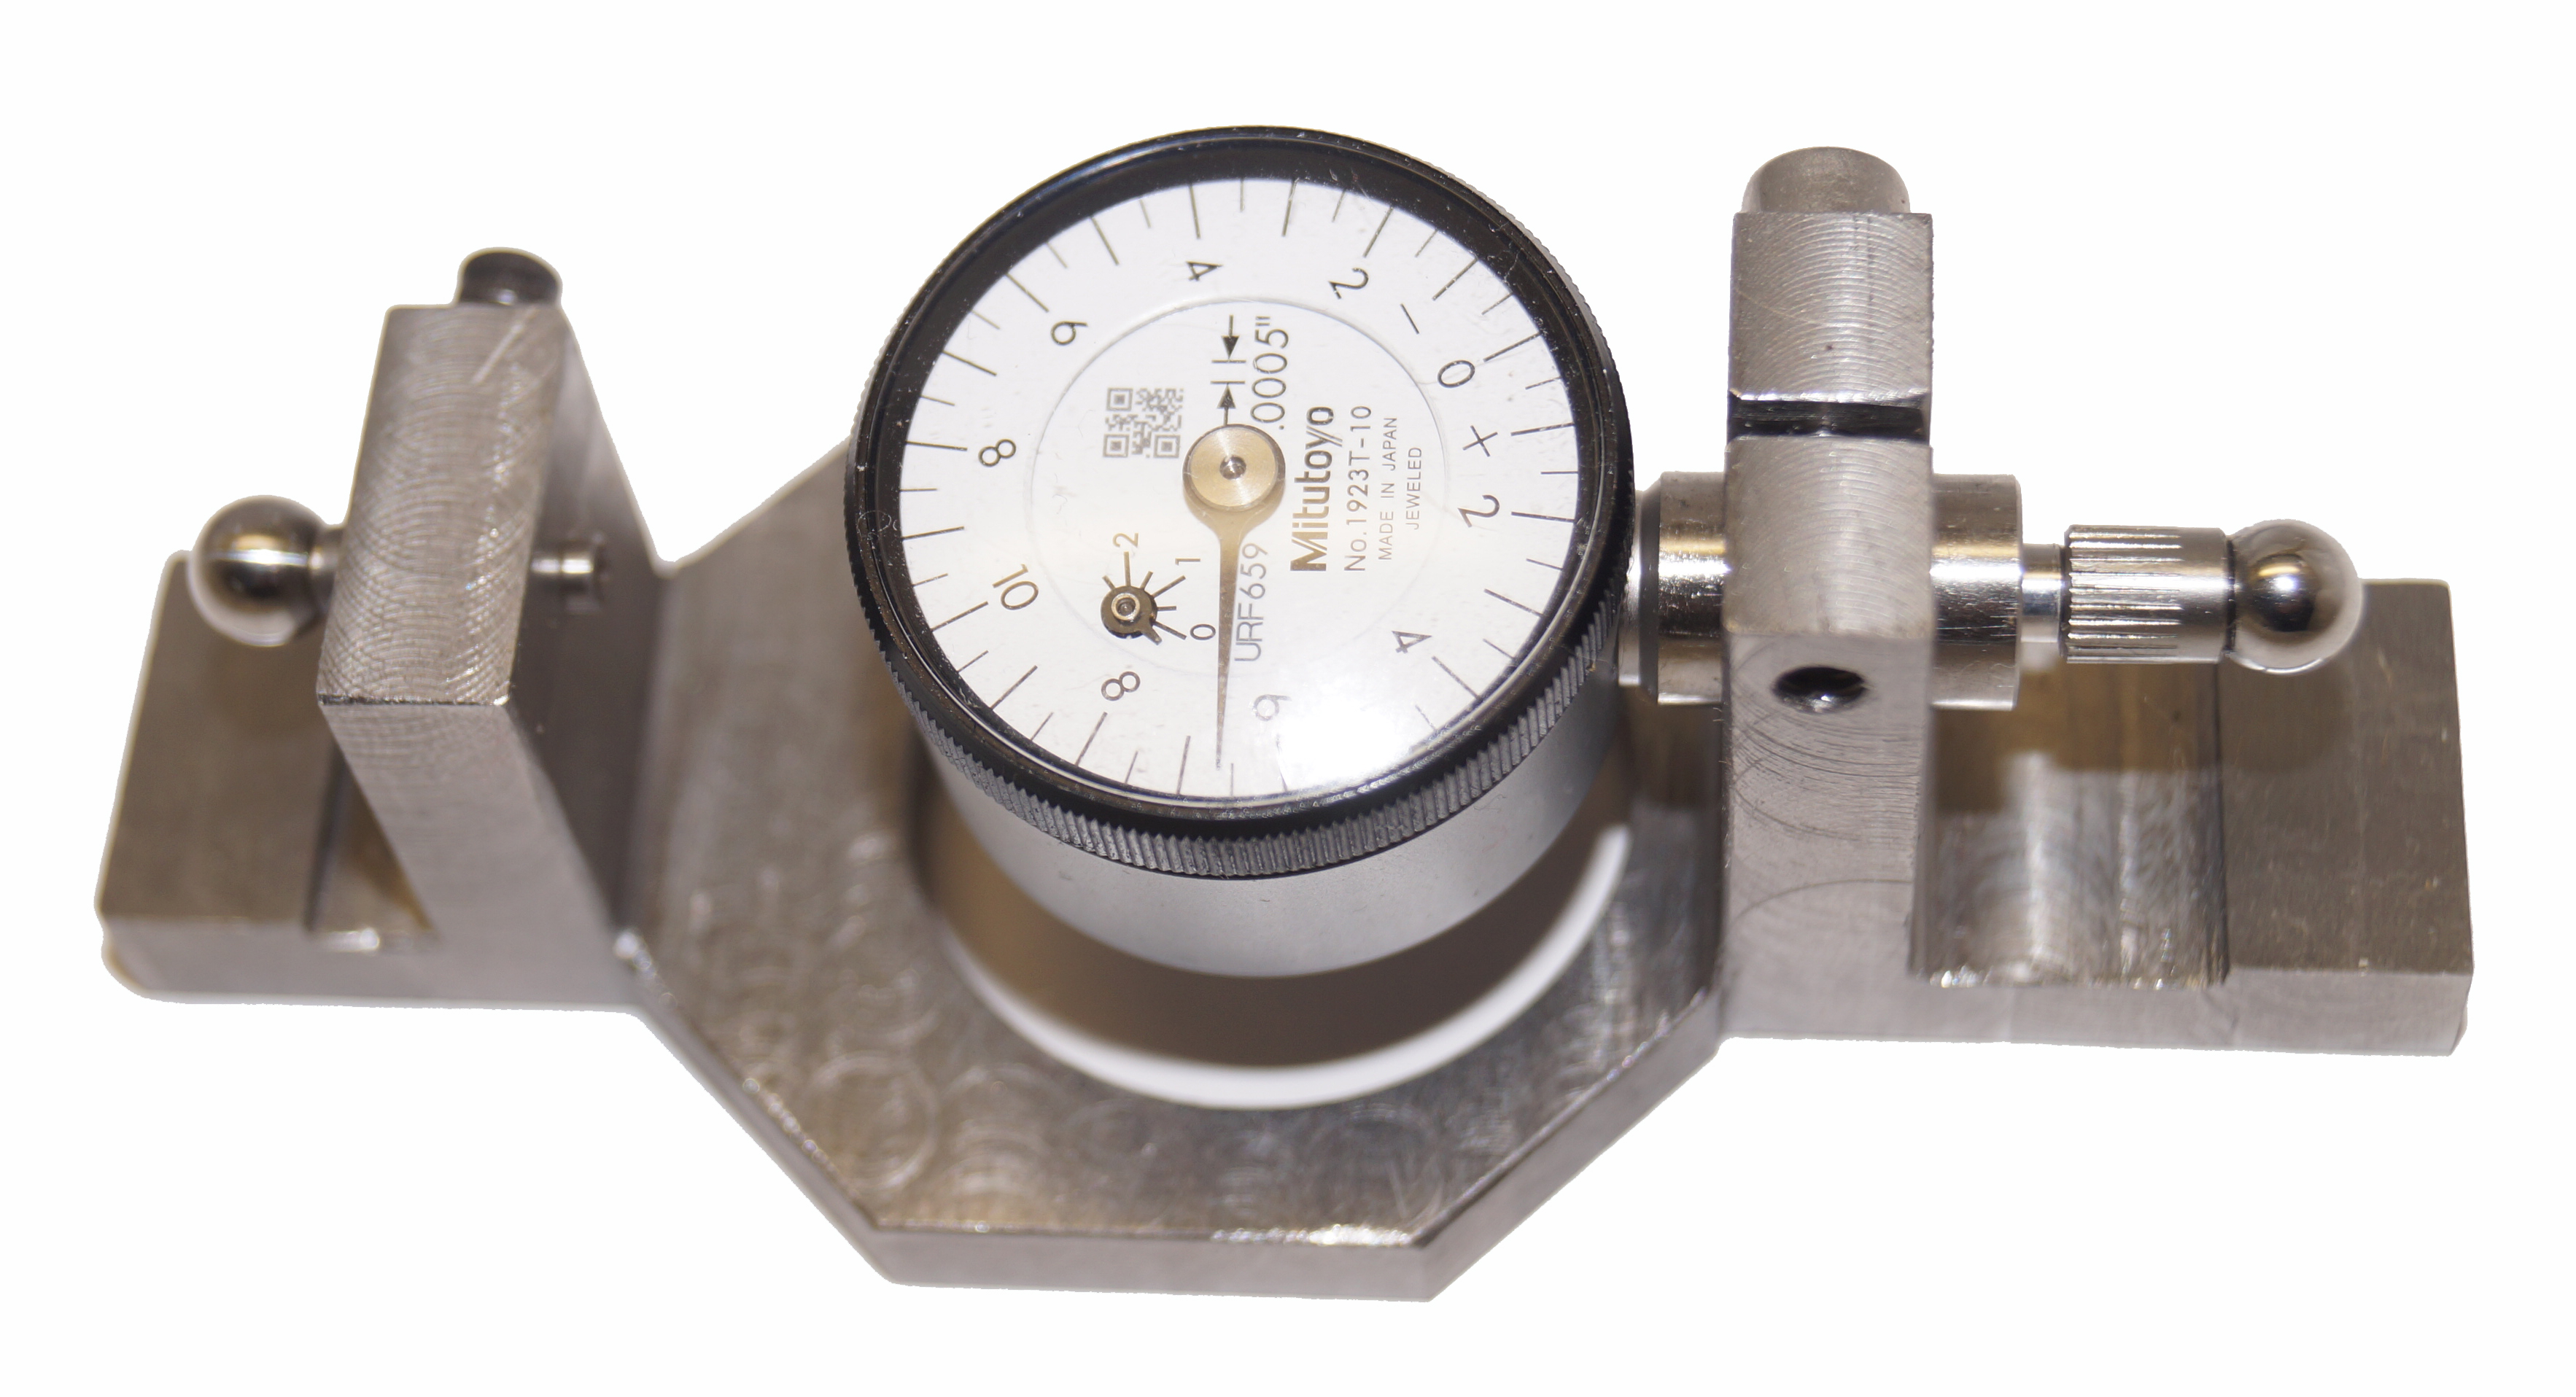 Mitutoyo Dial Indicator Inspection Bore Indicator